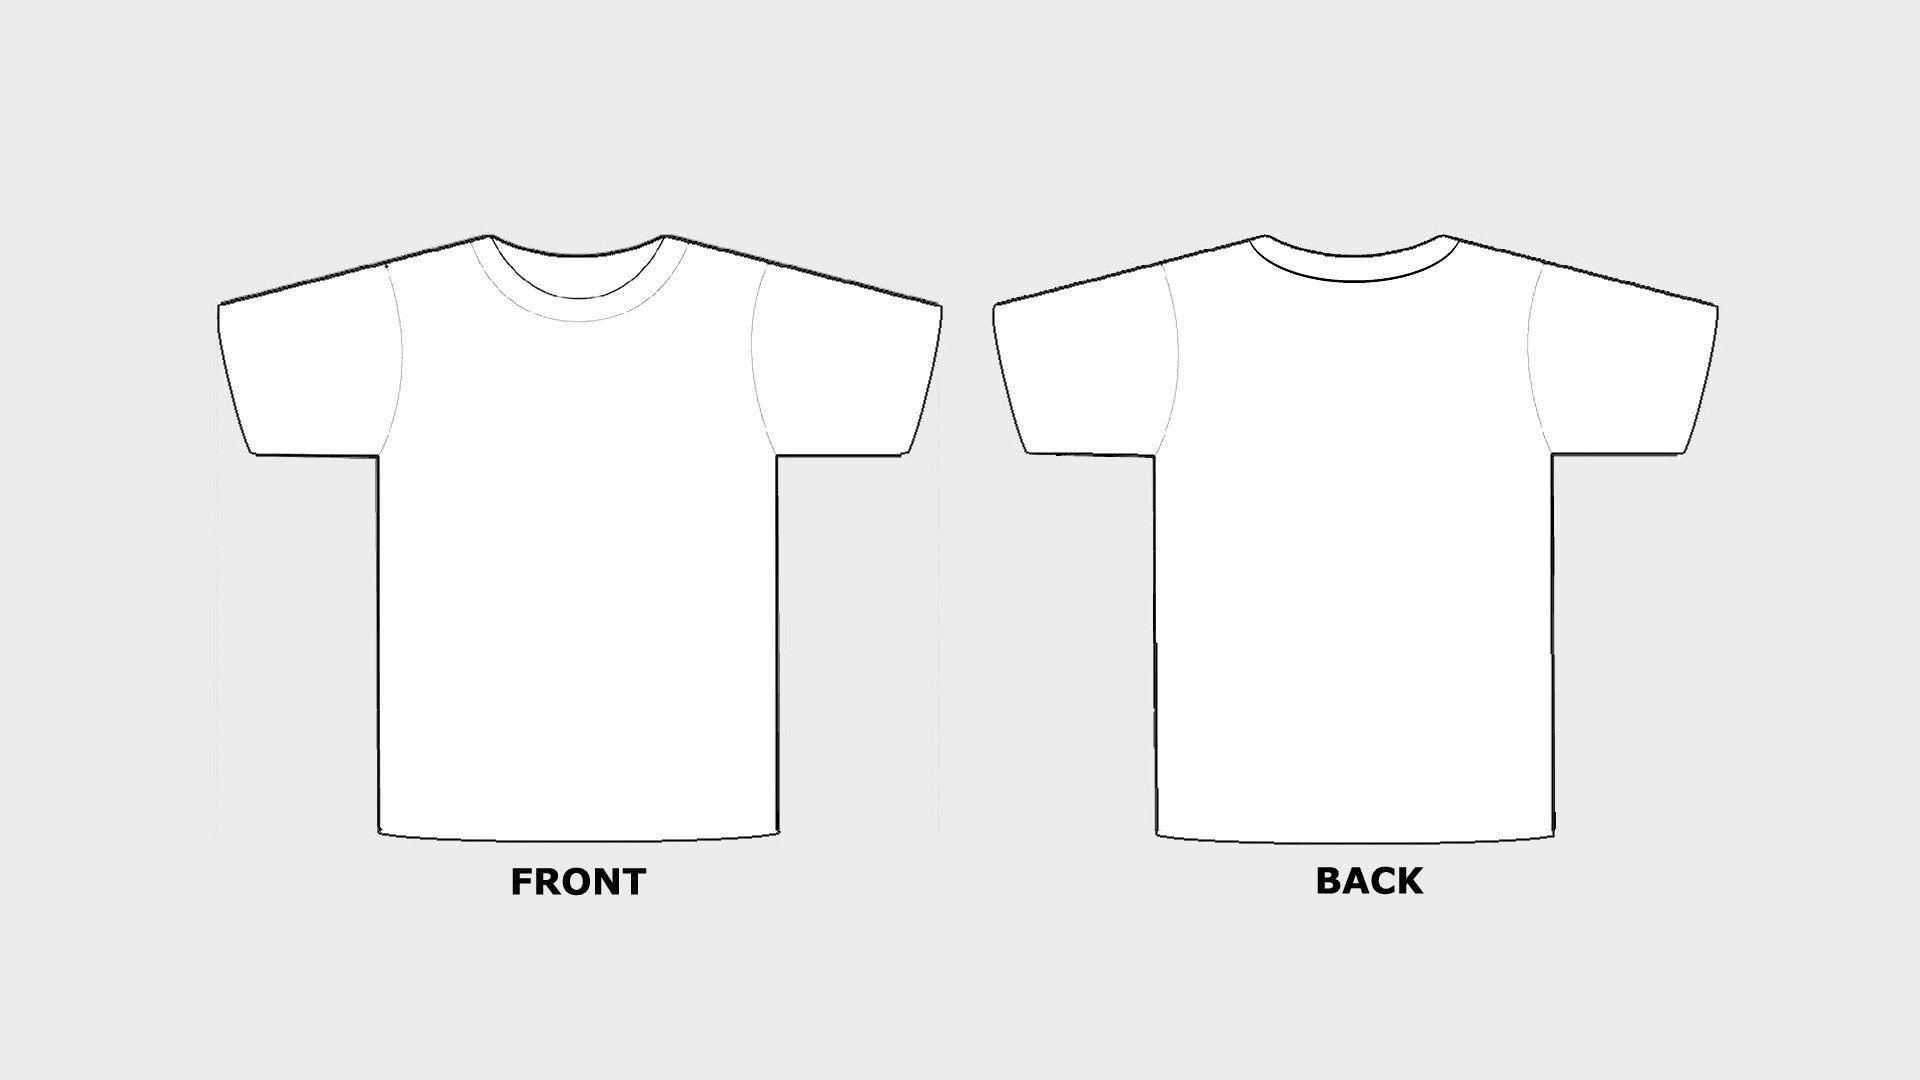 Free T Shirt Template Blank Tshirt Template Printable In Hd Hd Wallpapers